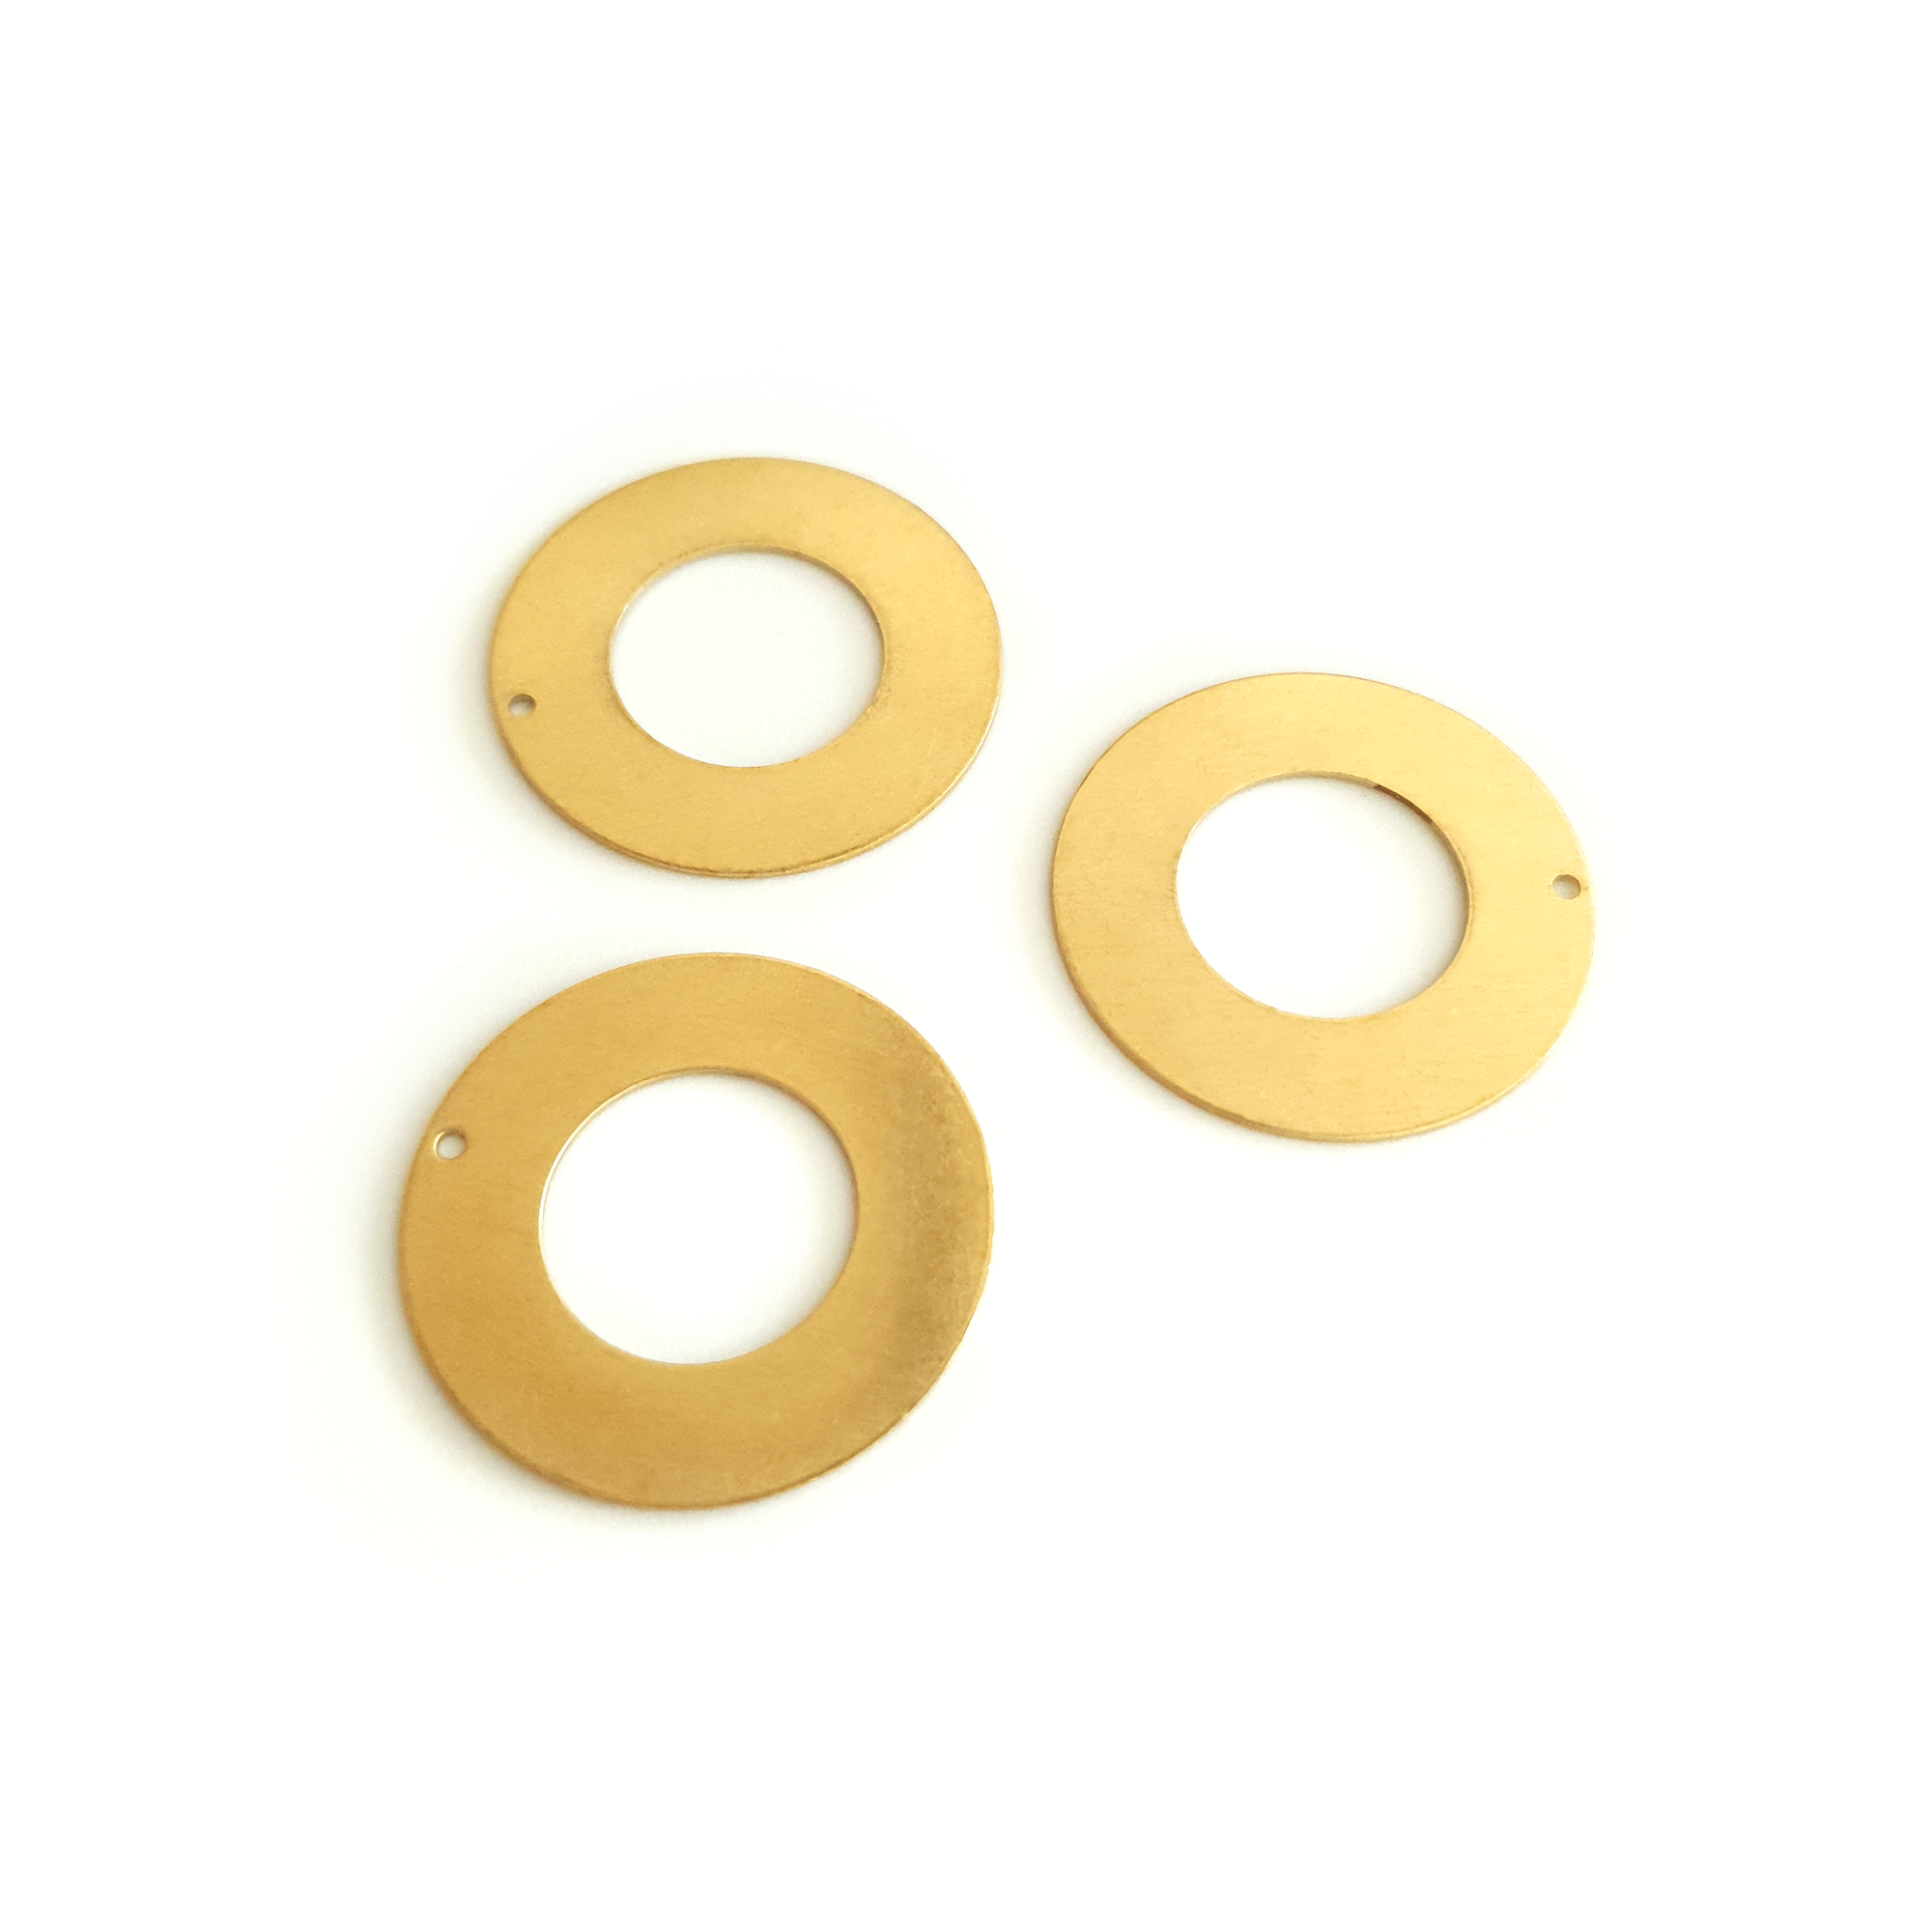 Circle Hollow 10-Piece Raw Brass Charm